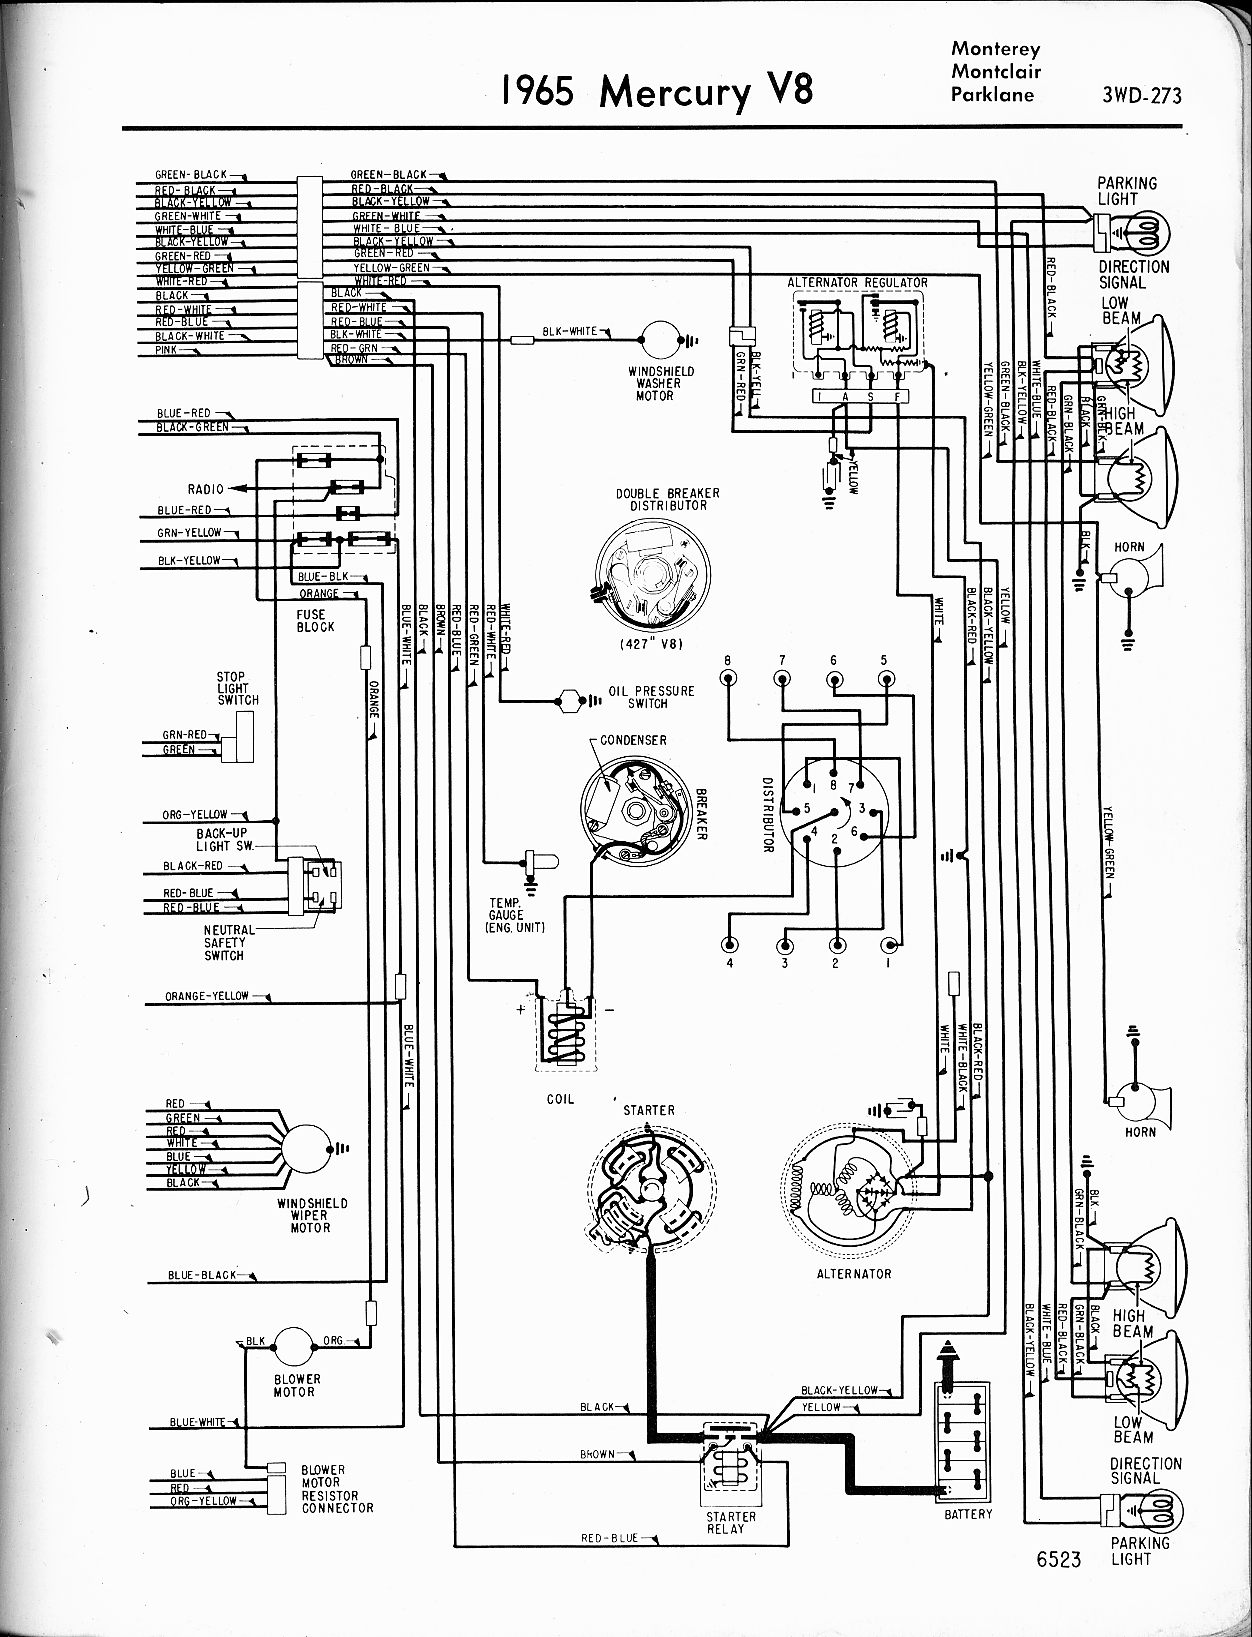 4C13B 1972 Ford F 250 Wiring Harness Diagram | Wiring Resources on 1982 ford f150 wiring diagram, 1992 ford l8000 wiring diagram, 84 ford f150 wiring diagram, 88 ford gt wiring diagram, 1999 ford truck wiring diagram, 96 ford f-250 wiring diagram, 2010 f150 stereo wiring diagram, 1988 ford f150 fuel system diagram, ford ignition module wiring diagram, 1988 ford f-250 wiring diagram, ford starter wiring diagram, f150 radio wiring diagram, 88 chevy silverado wiring diagram, 88 toyota camry wiring diagram, ford electronic ignition wiring diagram, 88 dodge dakota wiring diagram, 1956 ford wiring diagram, ford truck engine wiring diagram, 88 nissan sentra wiring diagram, 03 f150 wiring diagram,